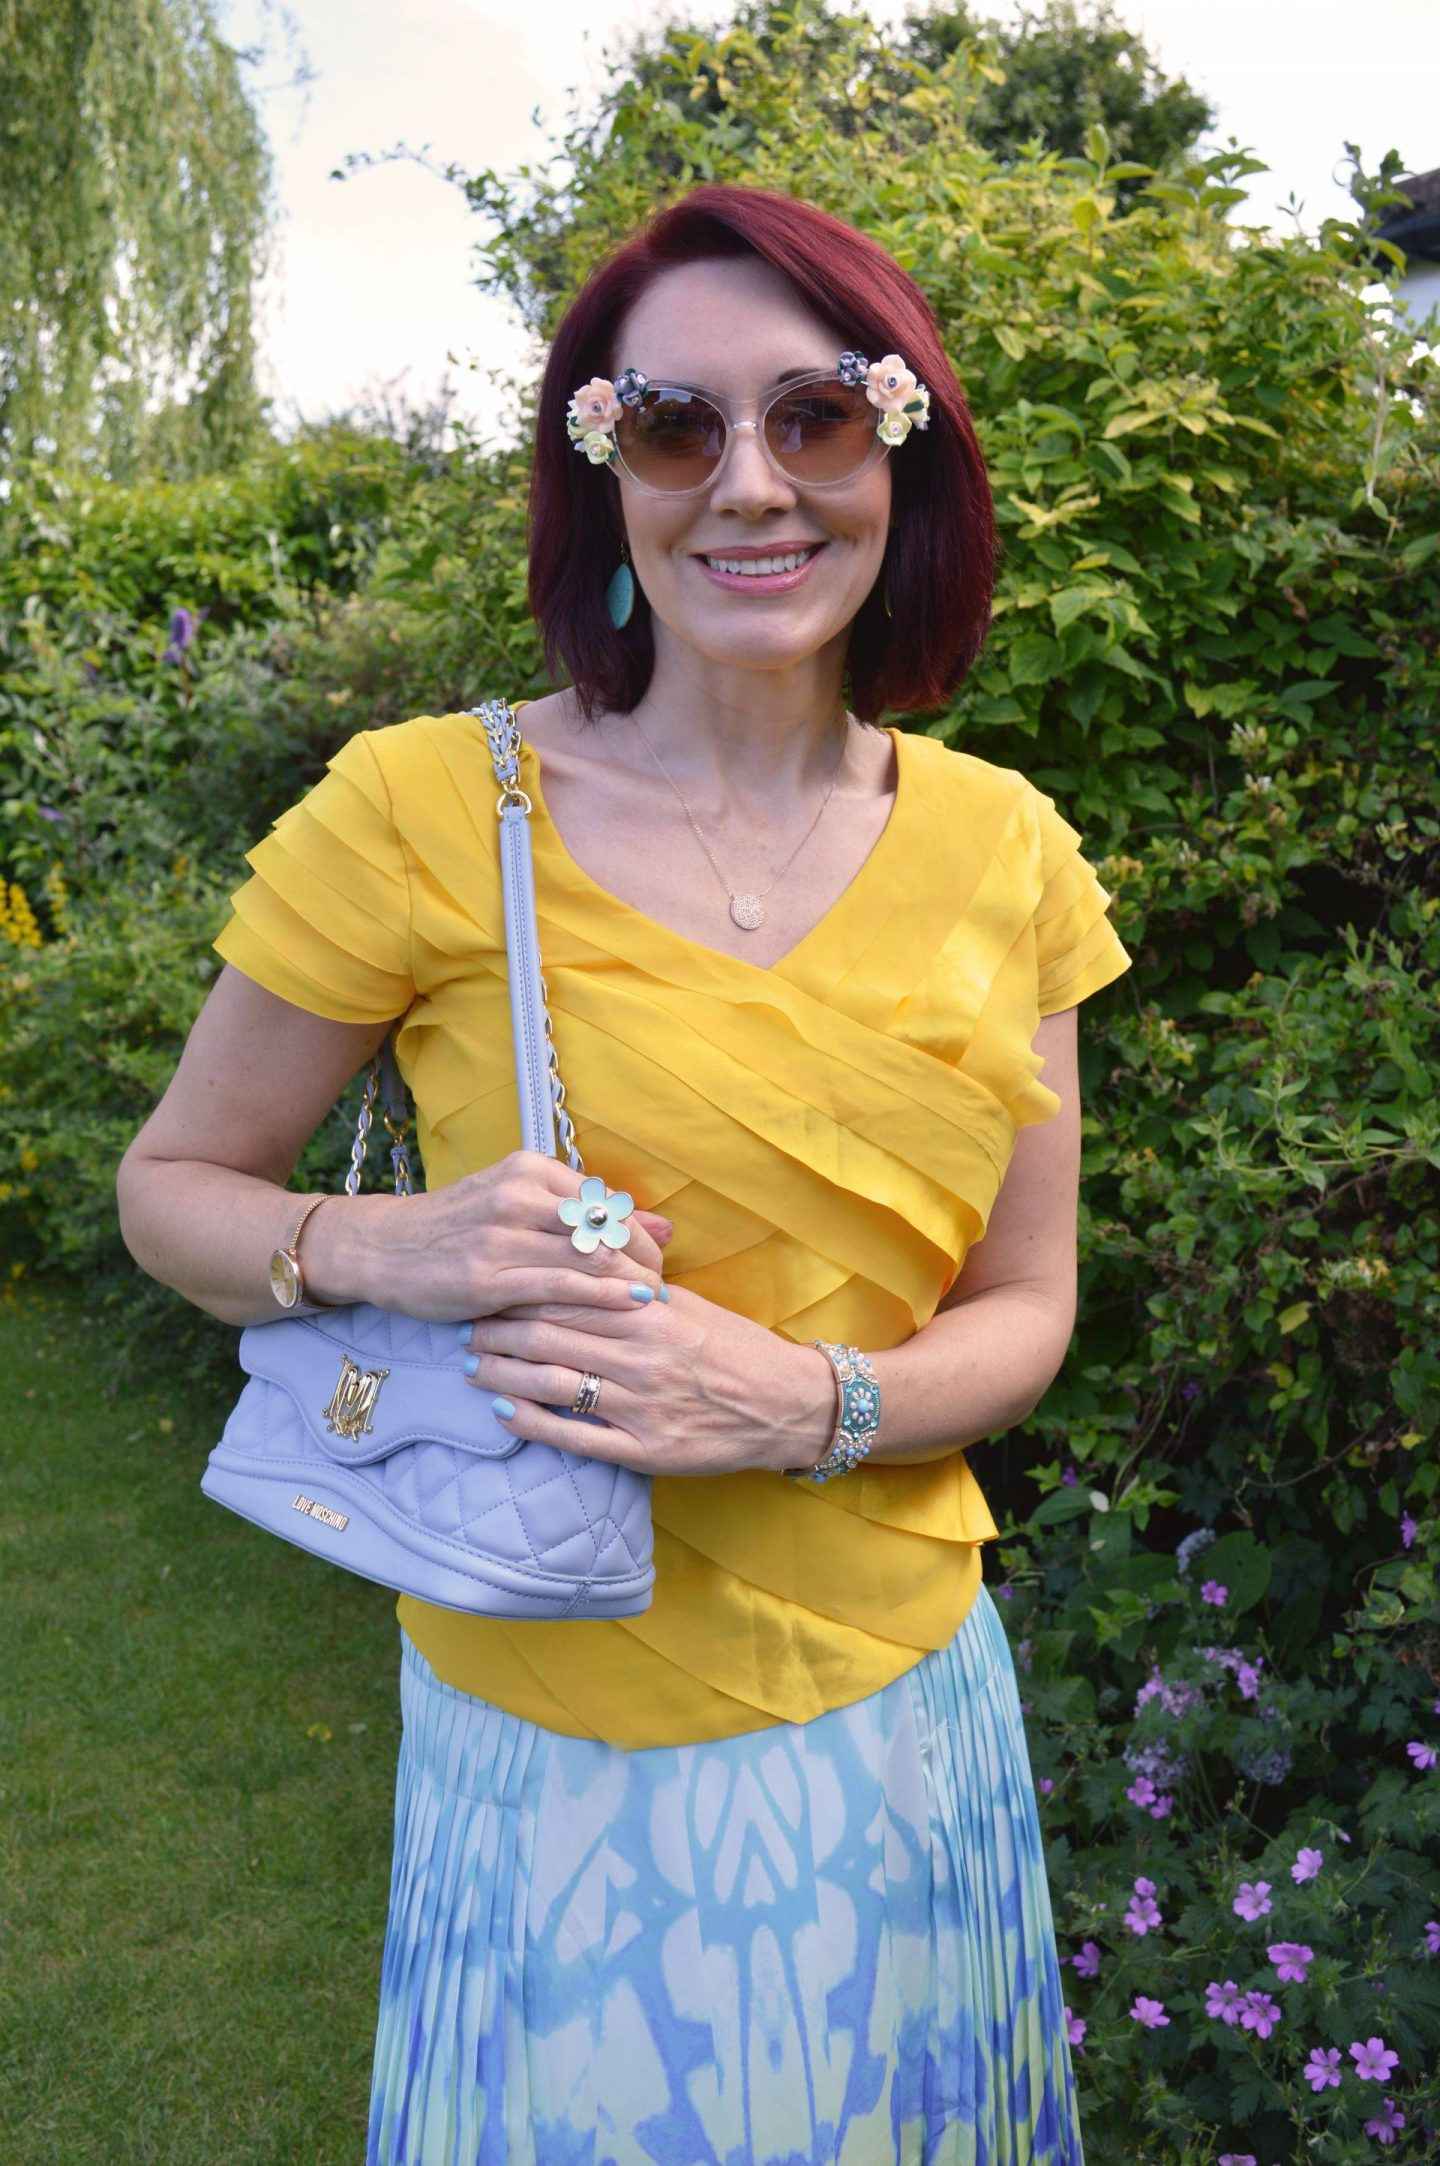 Match Made in Seven: California Dreaming, Reiss pleated skirt, Principles by Ben de Lisi yellow top, Love Moschino pale blue bag